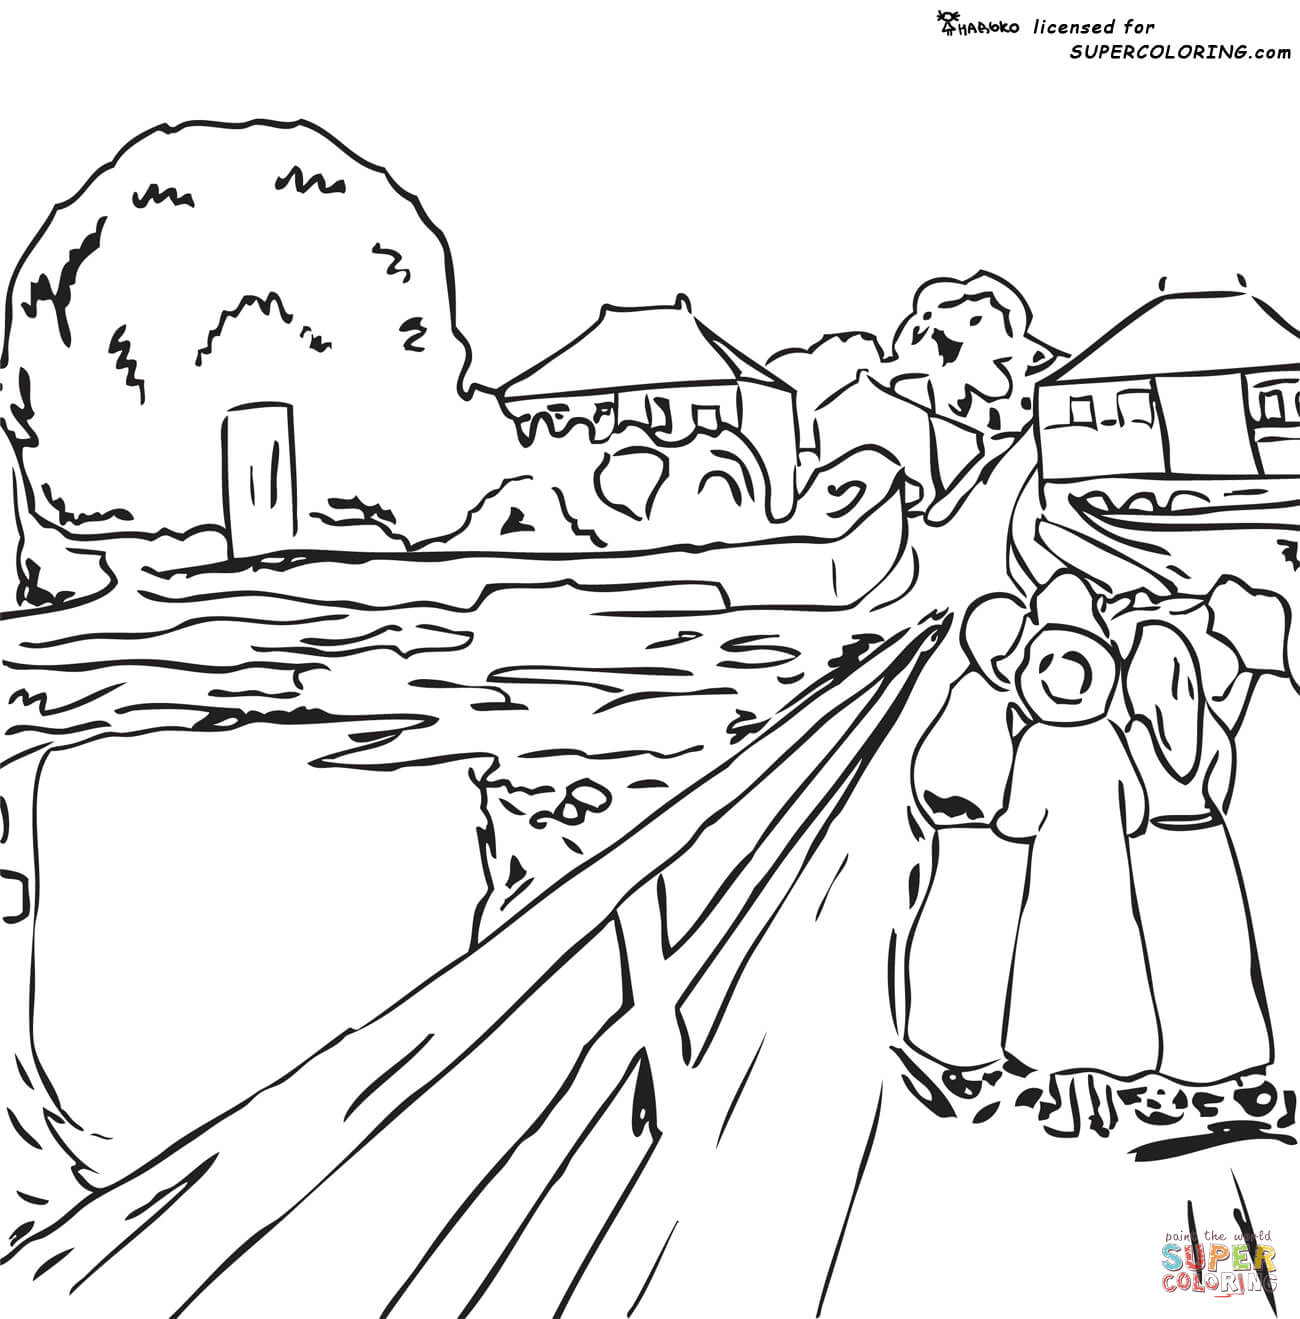 Tower Bridge Line Drawing at GetDrawings.com | Free for personal use ...